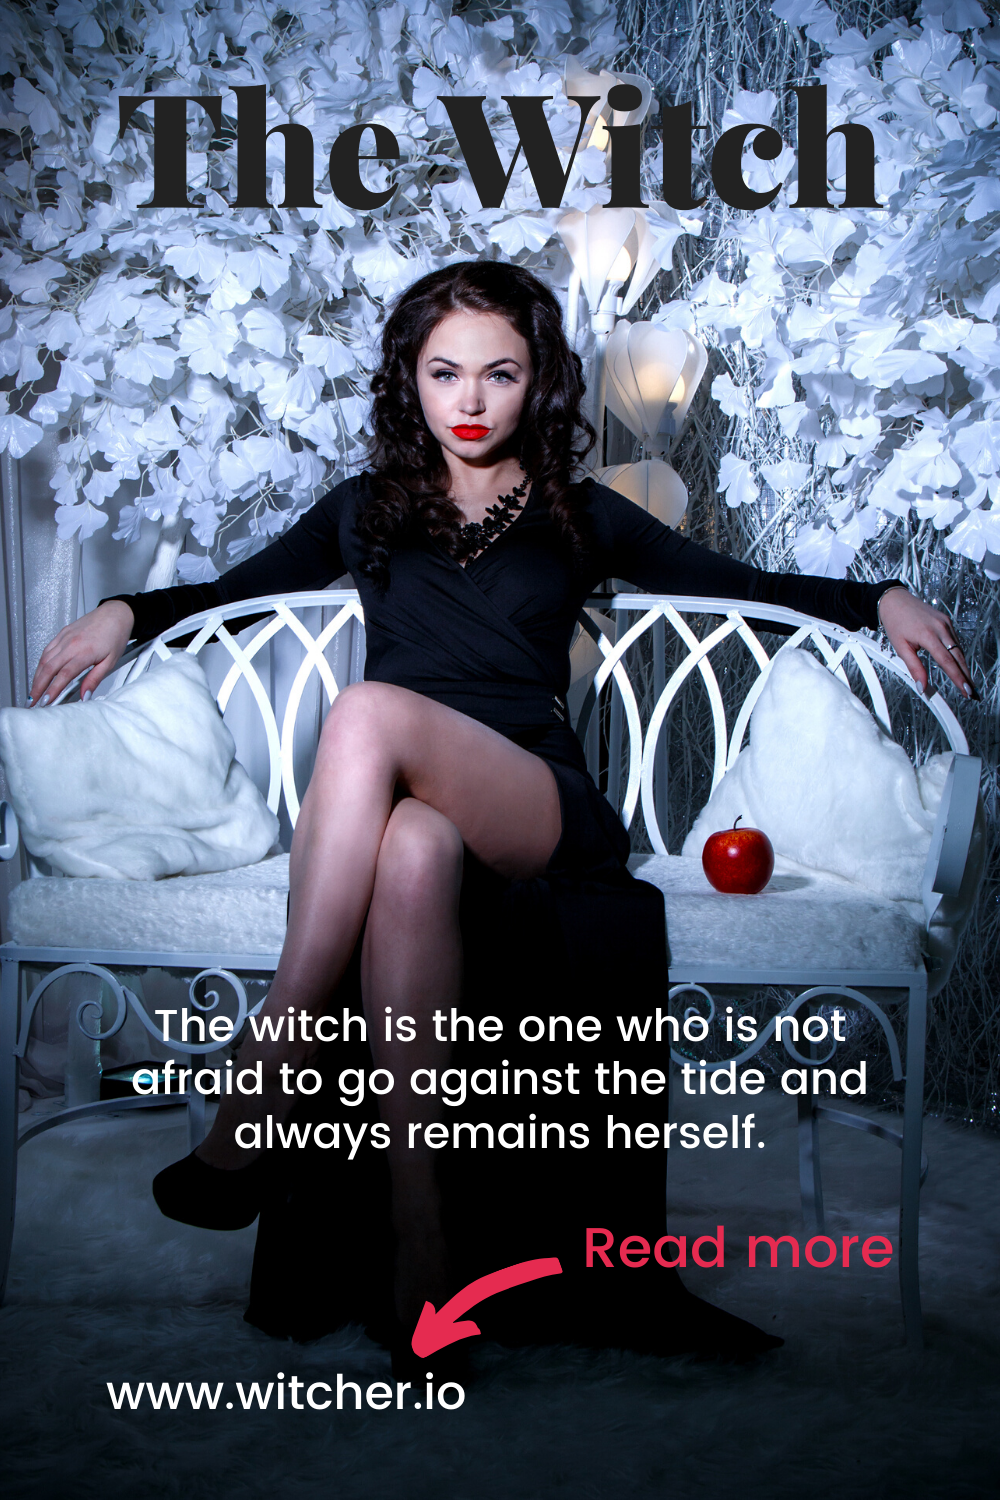 Witch quotes The witch is the one who is not afraid to go against the tide Witch quotes The witch is the one who knows that empathy is a gift not a curse The witch is the...